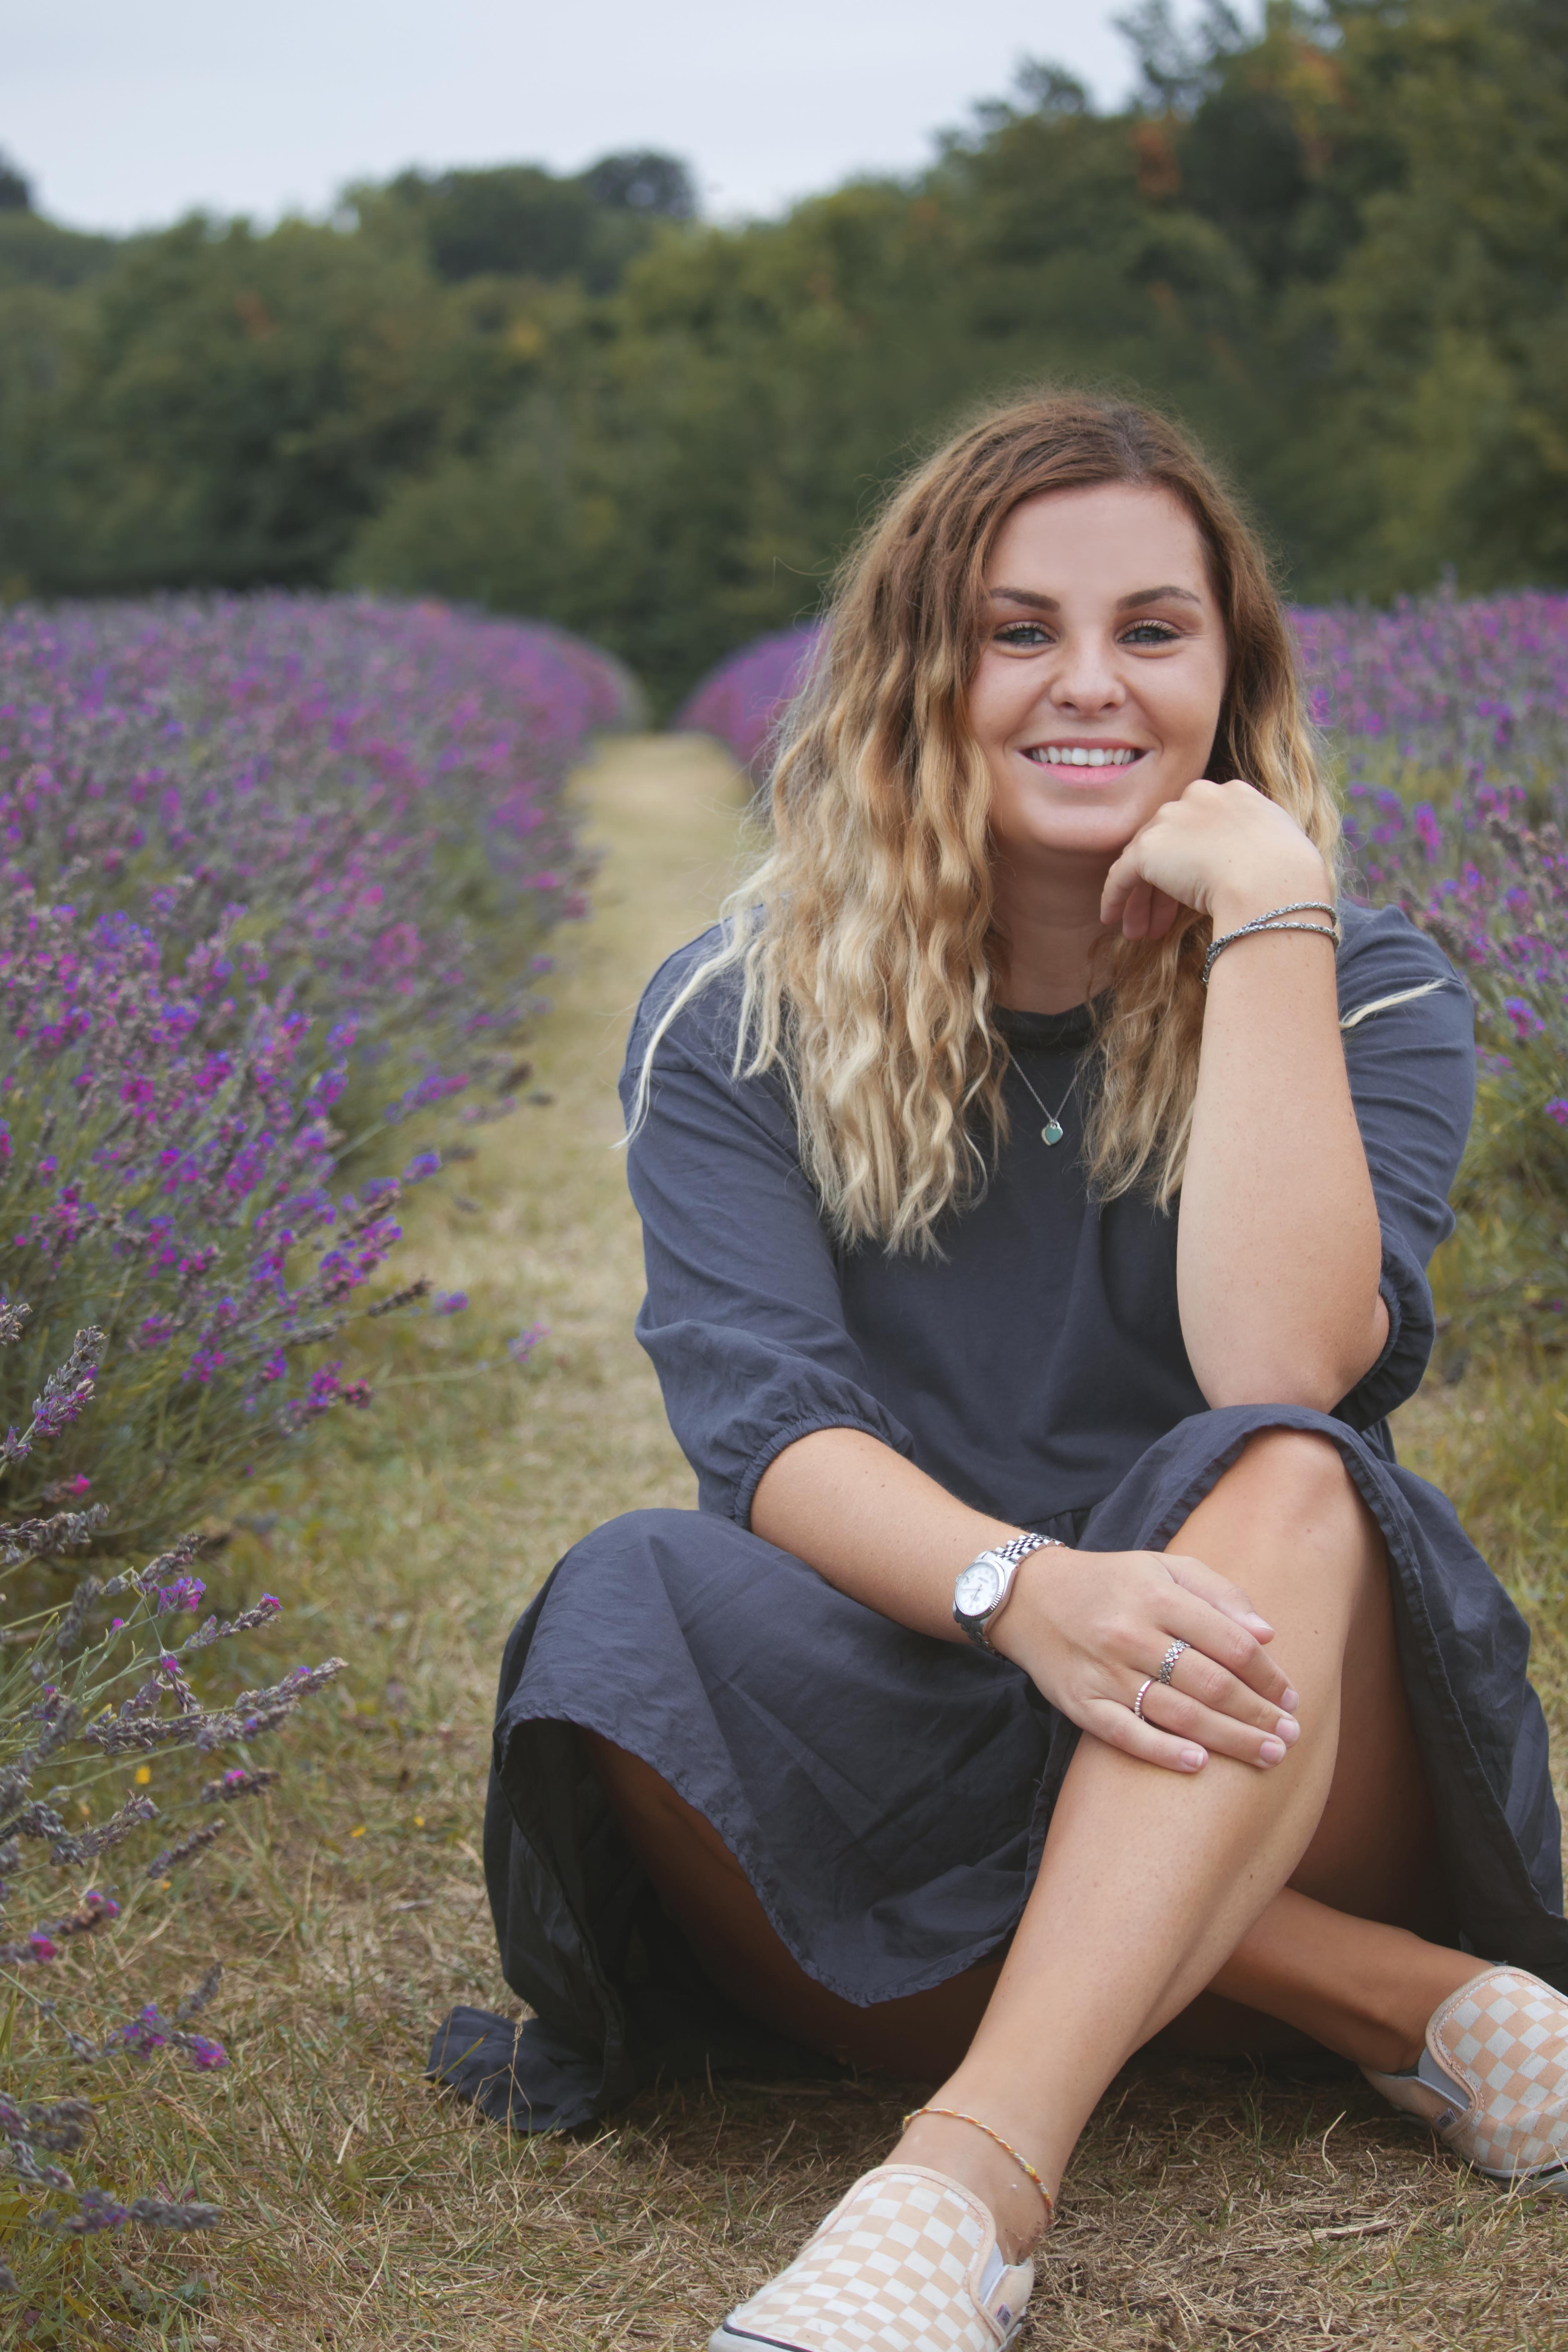 Relaxed Branding Photography at the Lavender Fields